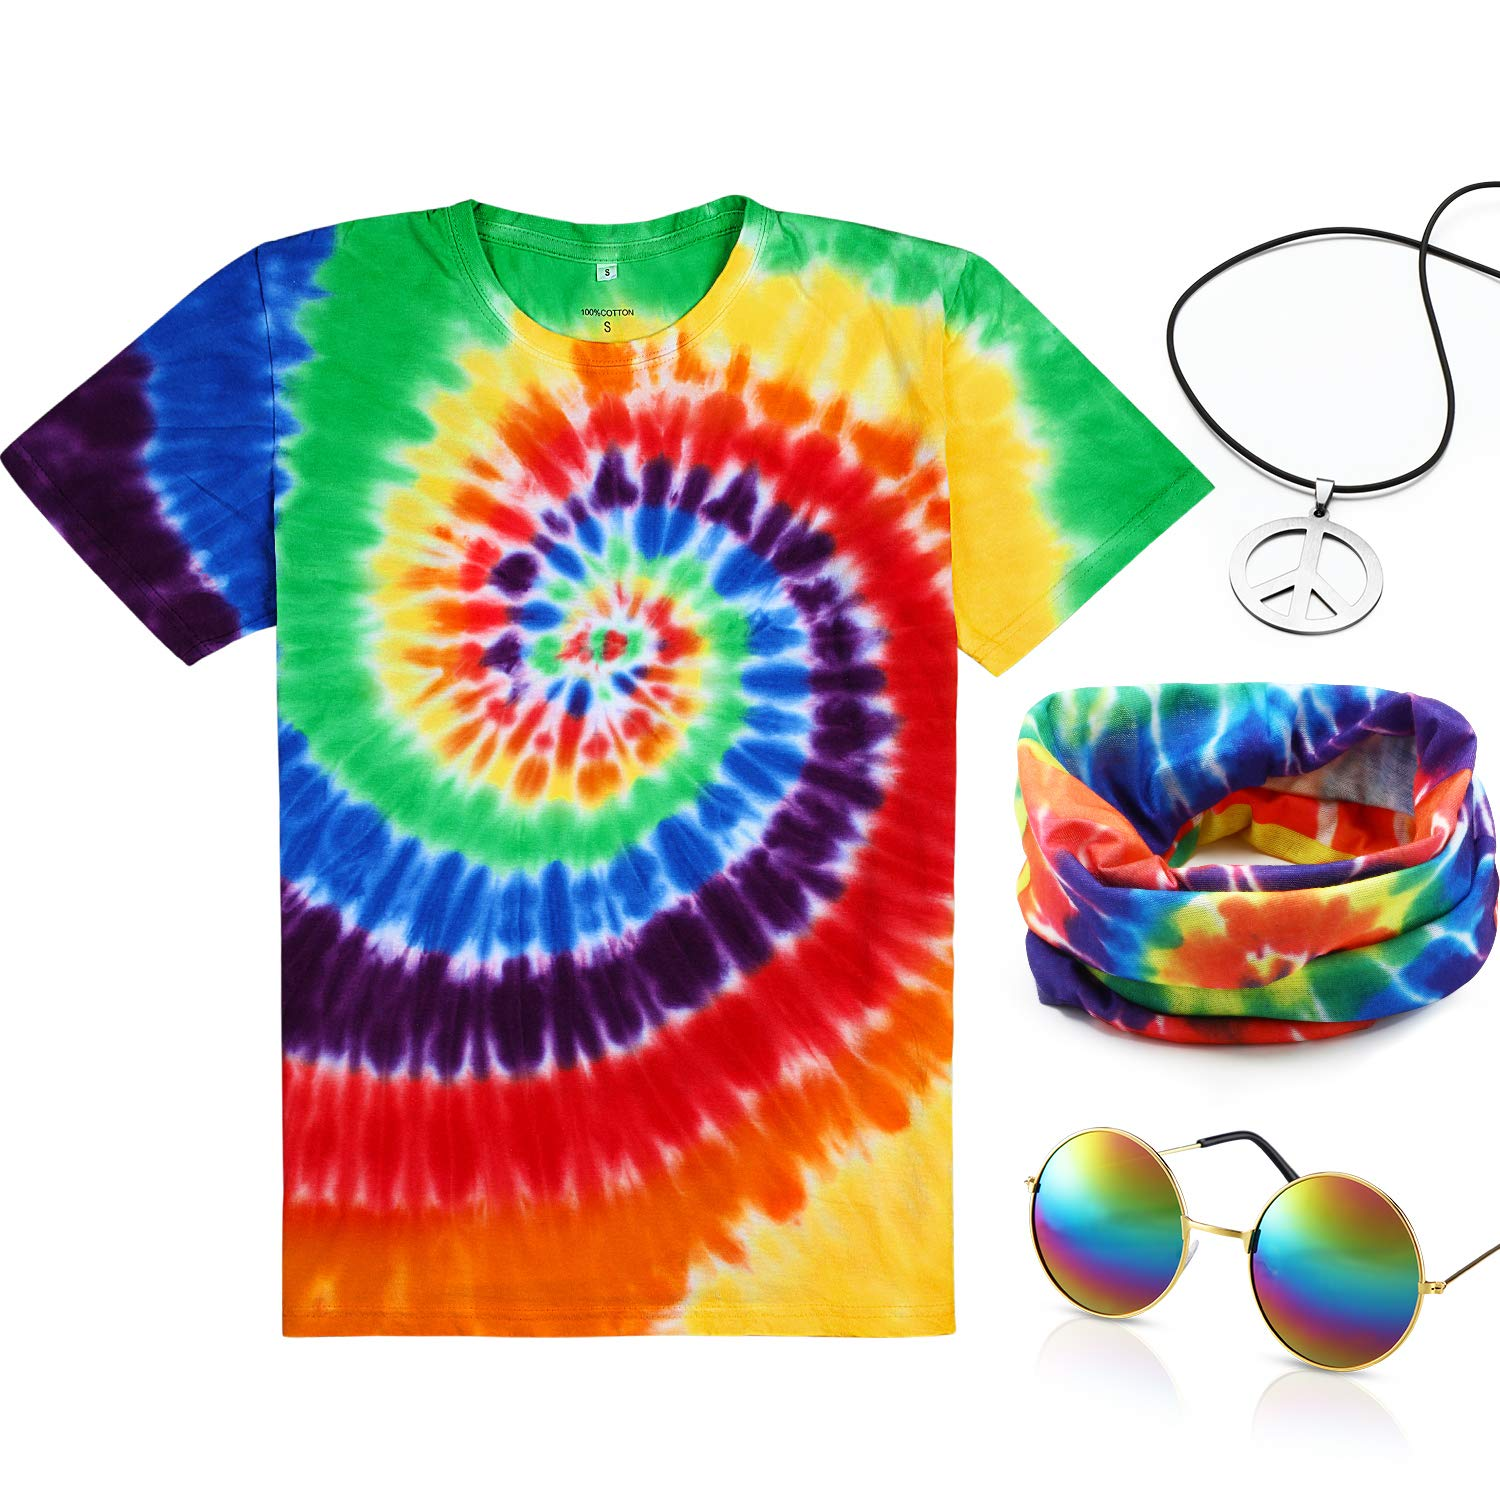 1960s – 70s Mens Shirts- Disco Shirts, Hippie Shirts 4 Pieces Hippie Costume Set Include Colorful Tie-Dye T-Shirt Peace Sign Necklace Headband and Sunglasses for Theme Parties $23.99 AT vintagedancer.com